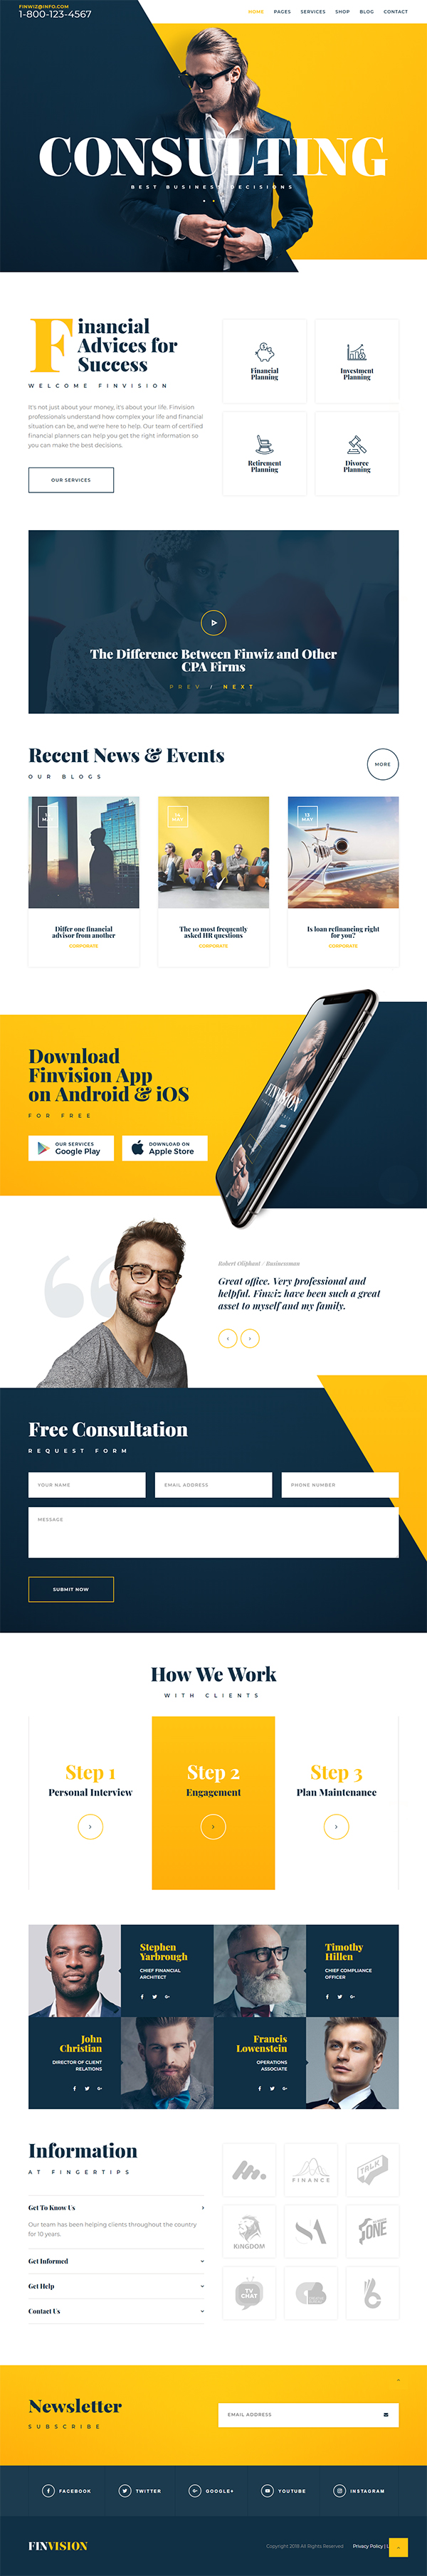 Finvision - Financial Audit And Consulting WordPress Theme